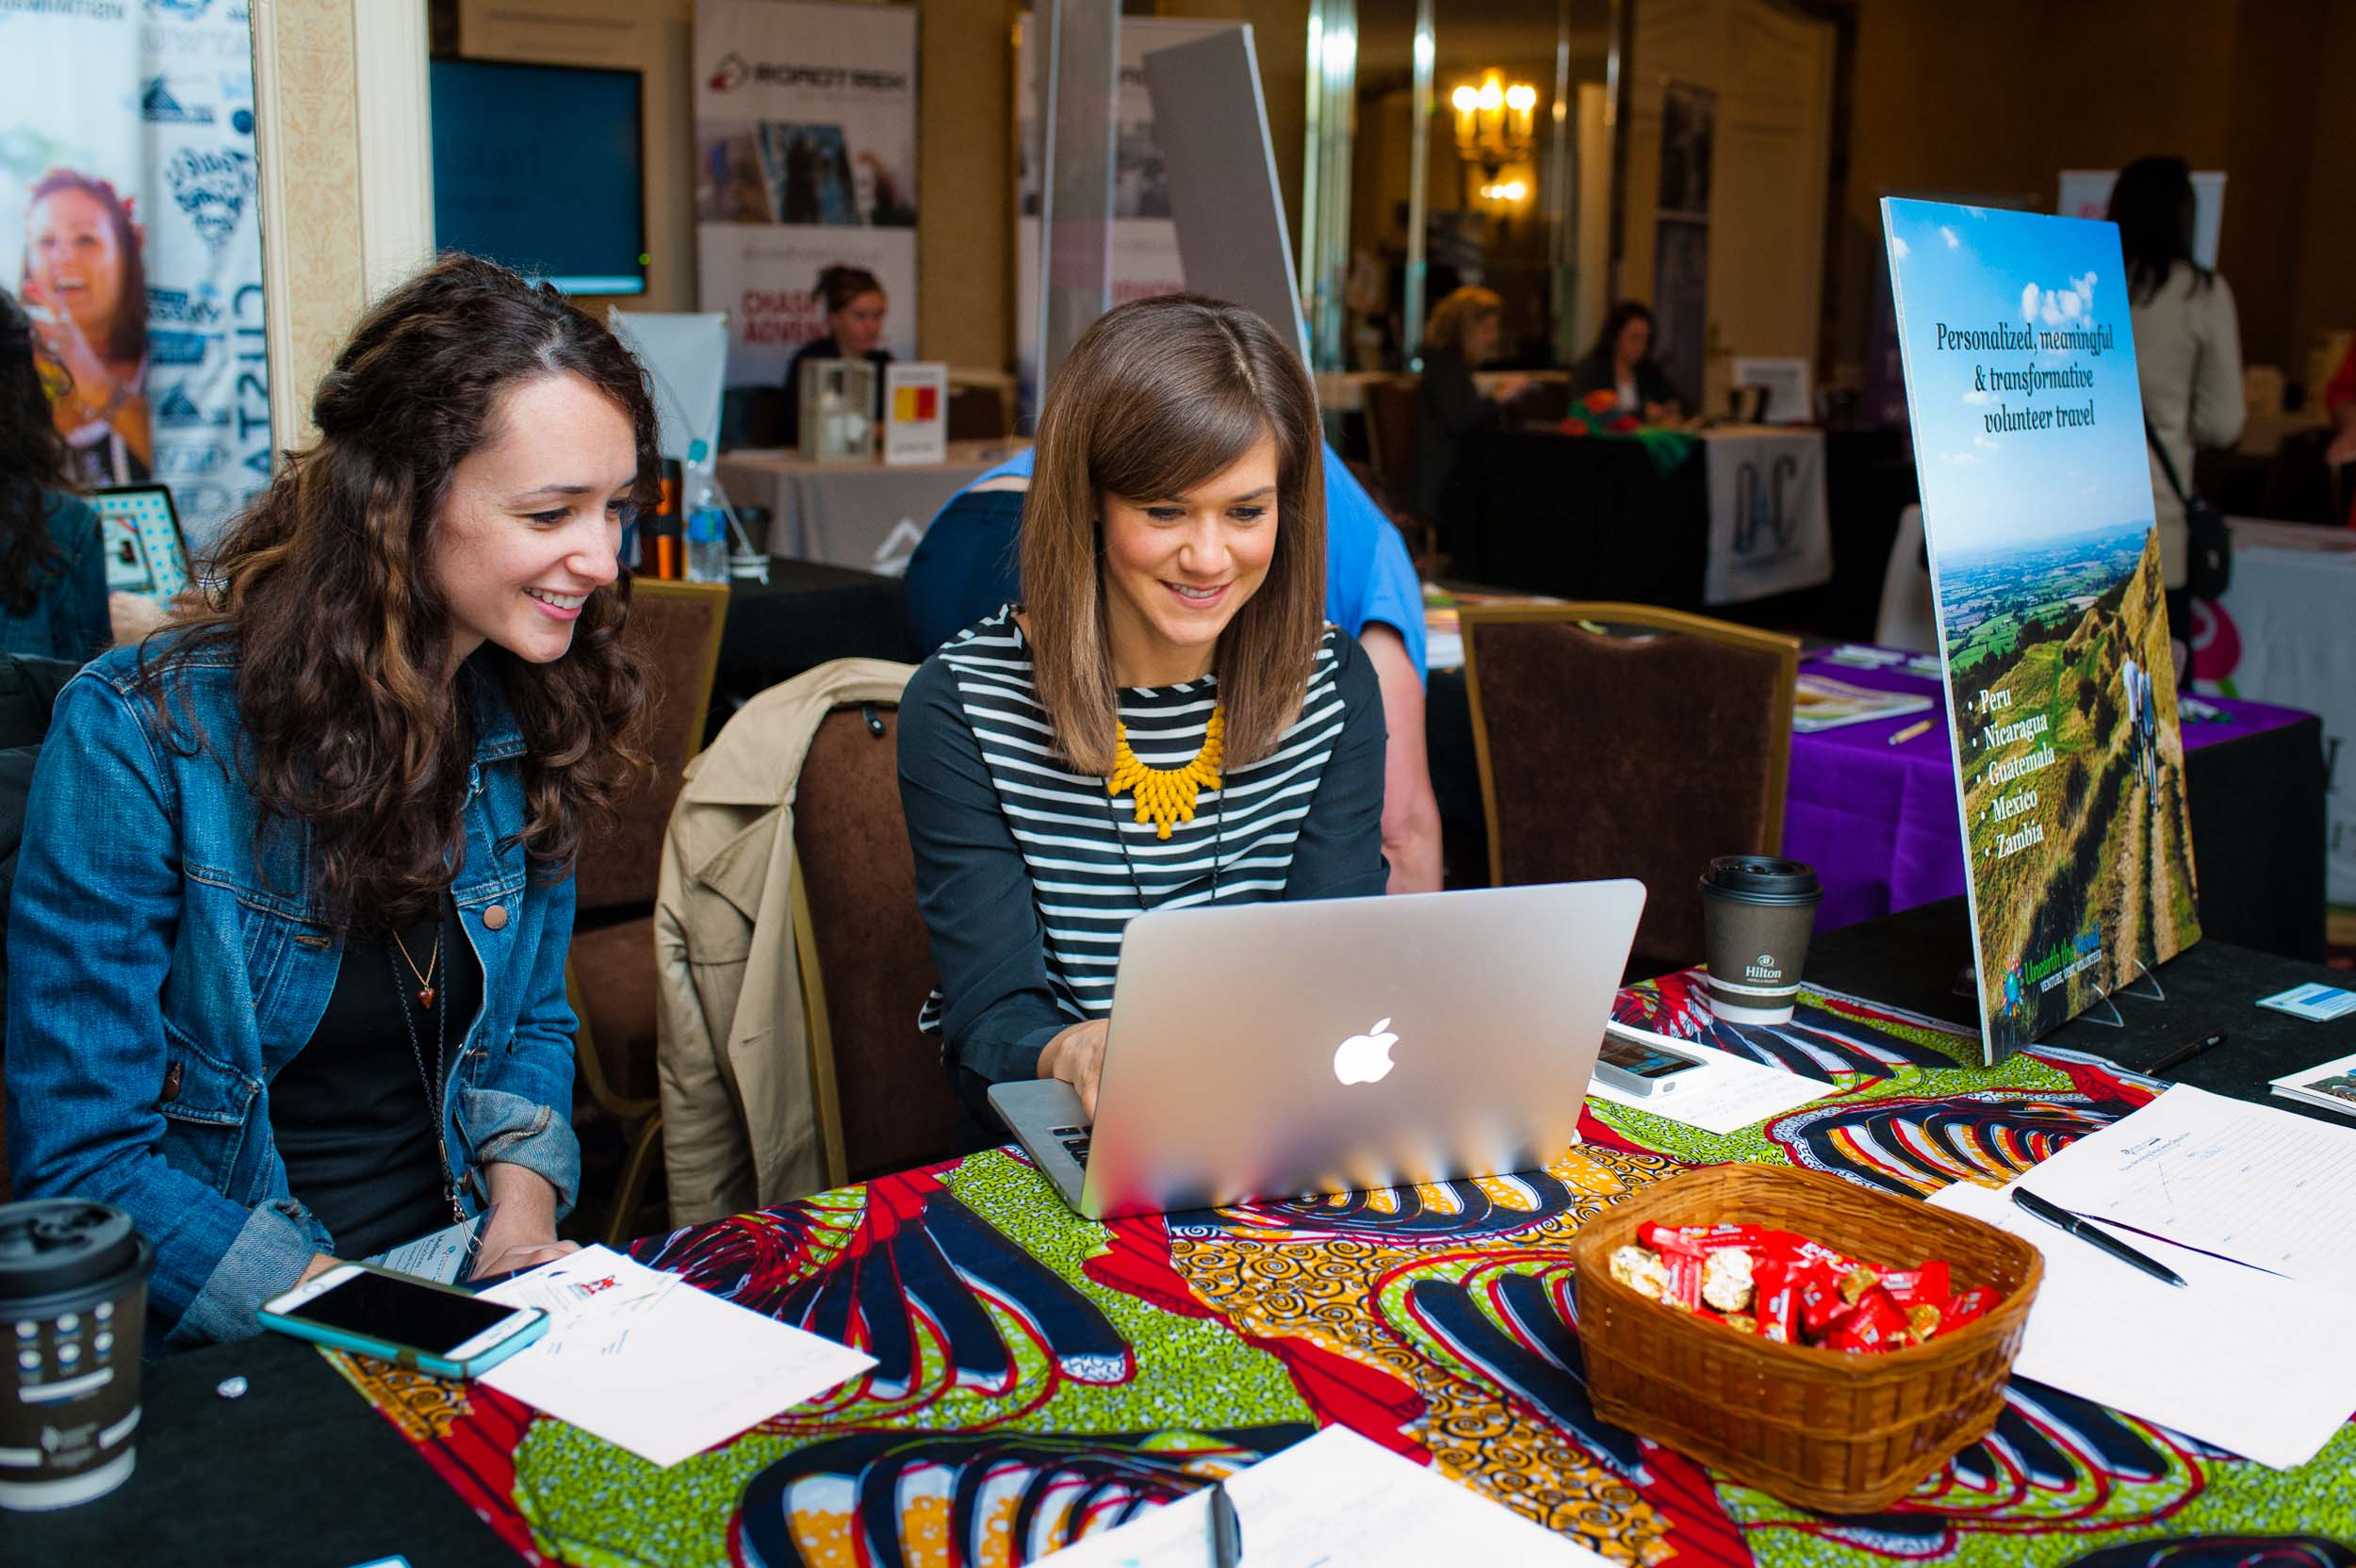 brand campaign proposal tips from Wanderful and the Women in Travel Summit